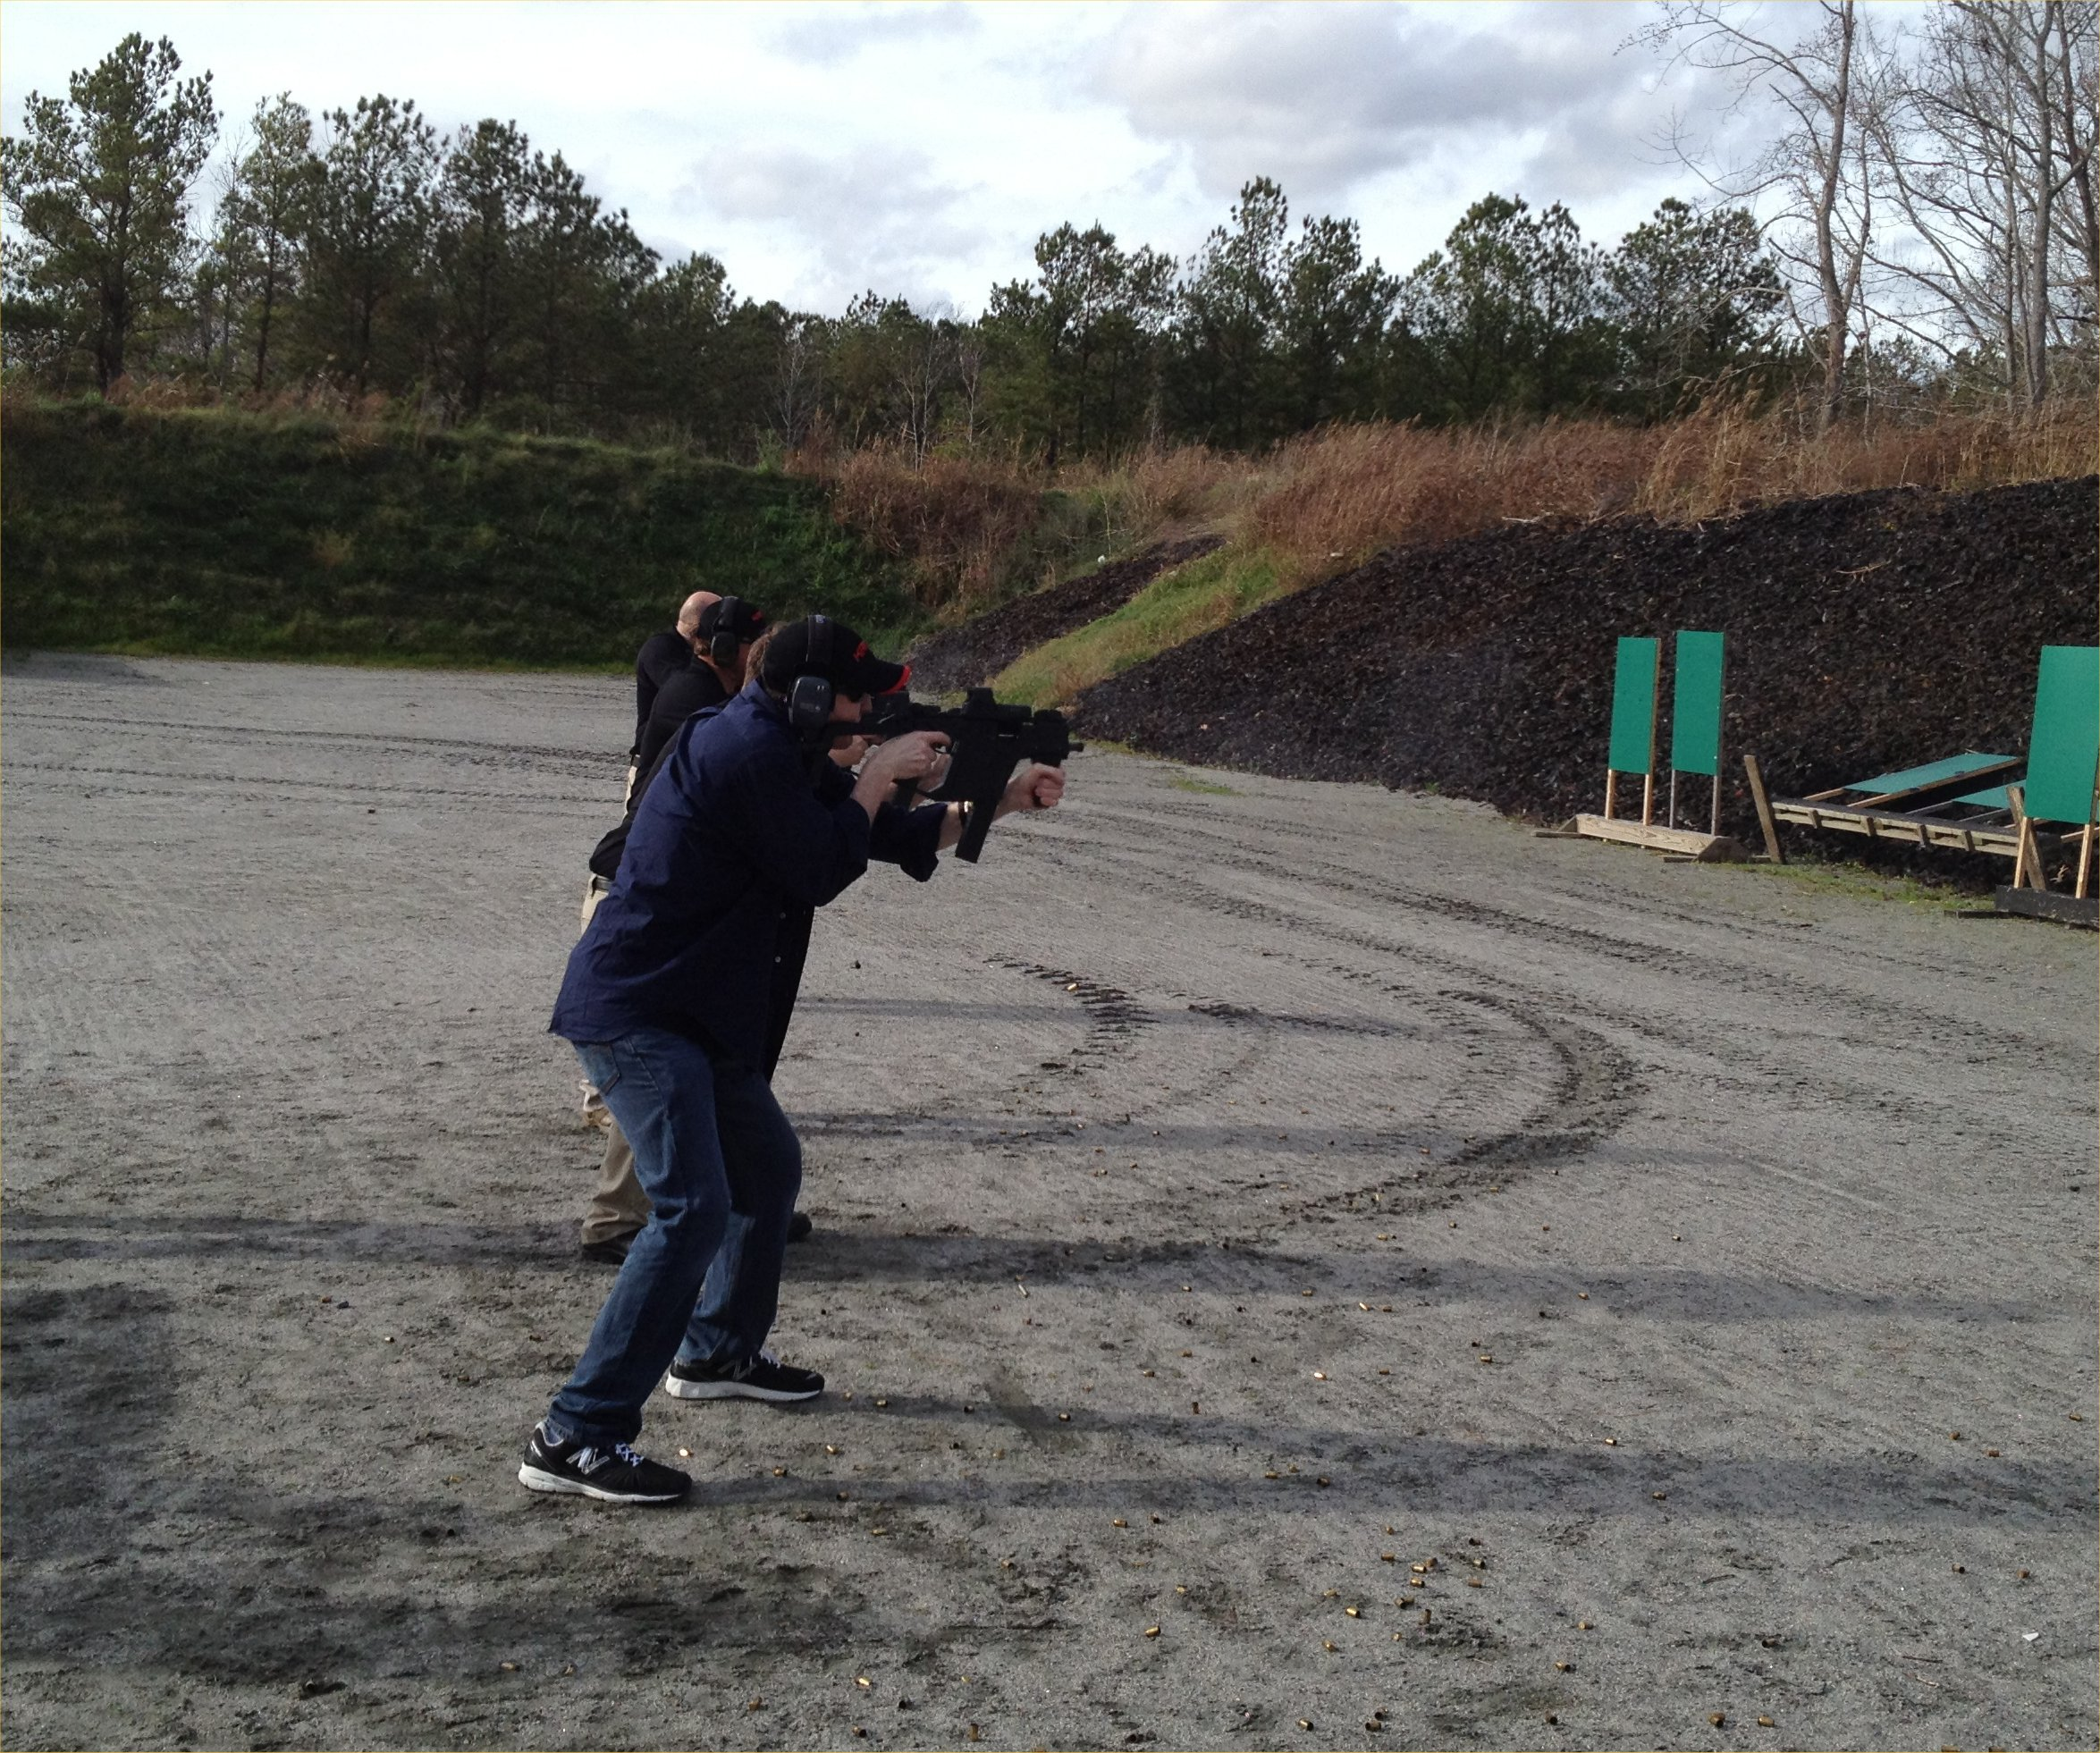 DR Runs KRISS Vector SMG .45 ACP Submachine Gun at the Range in Virginia Beach (Videos!)